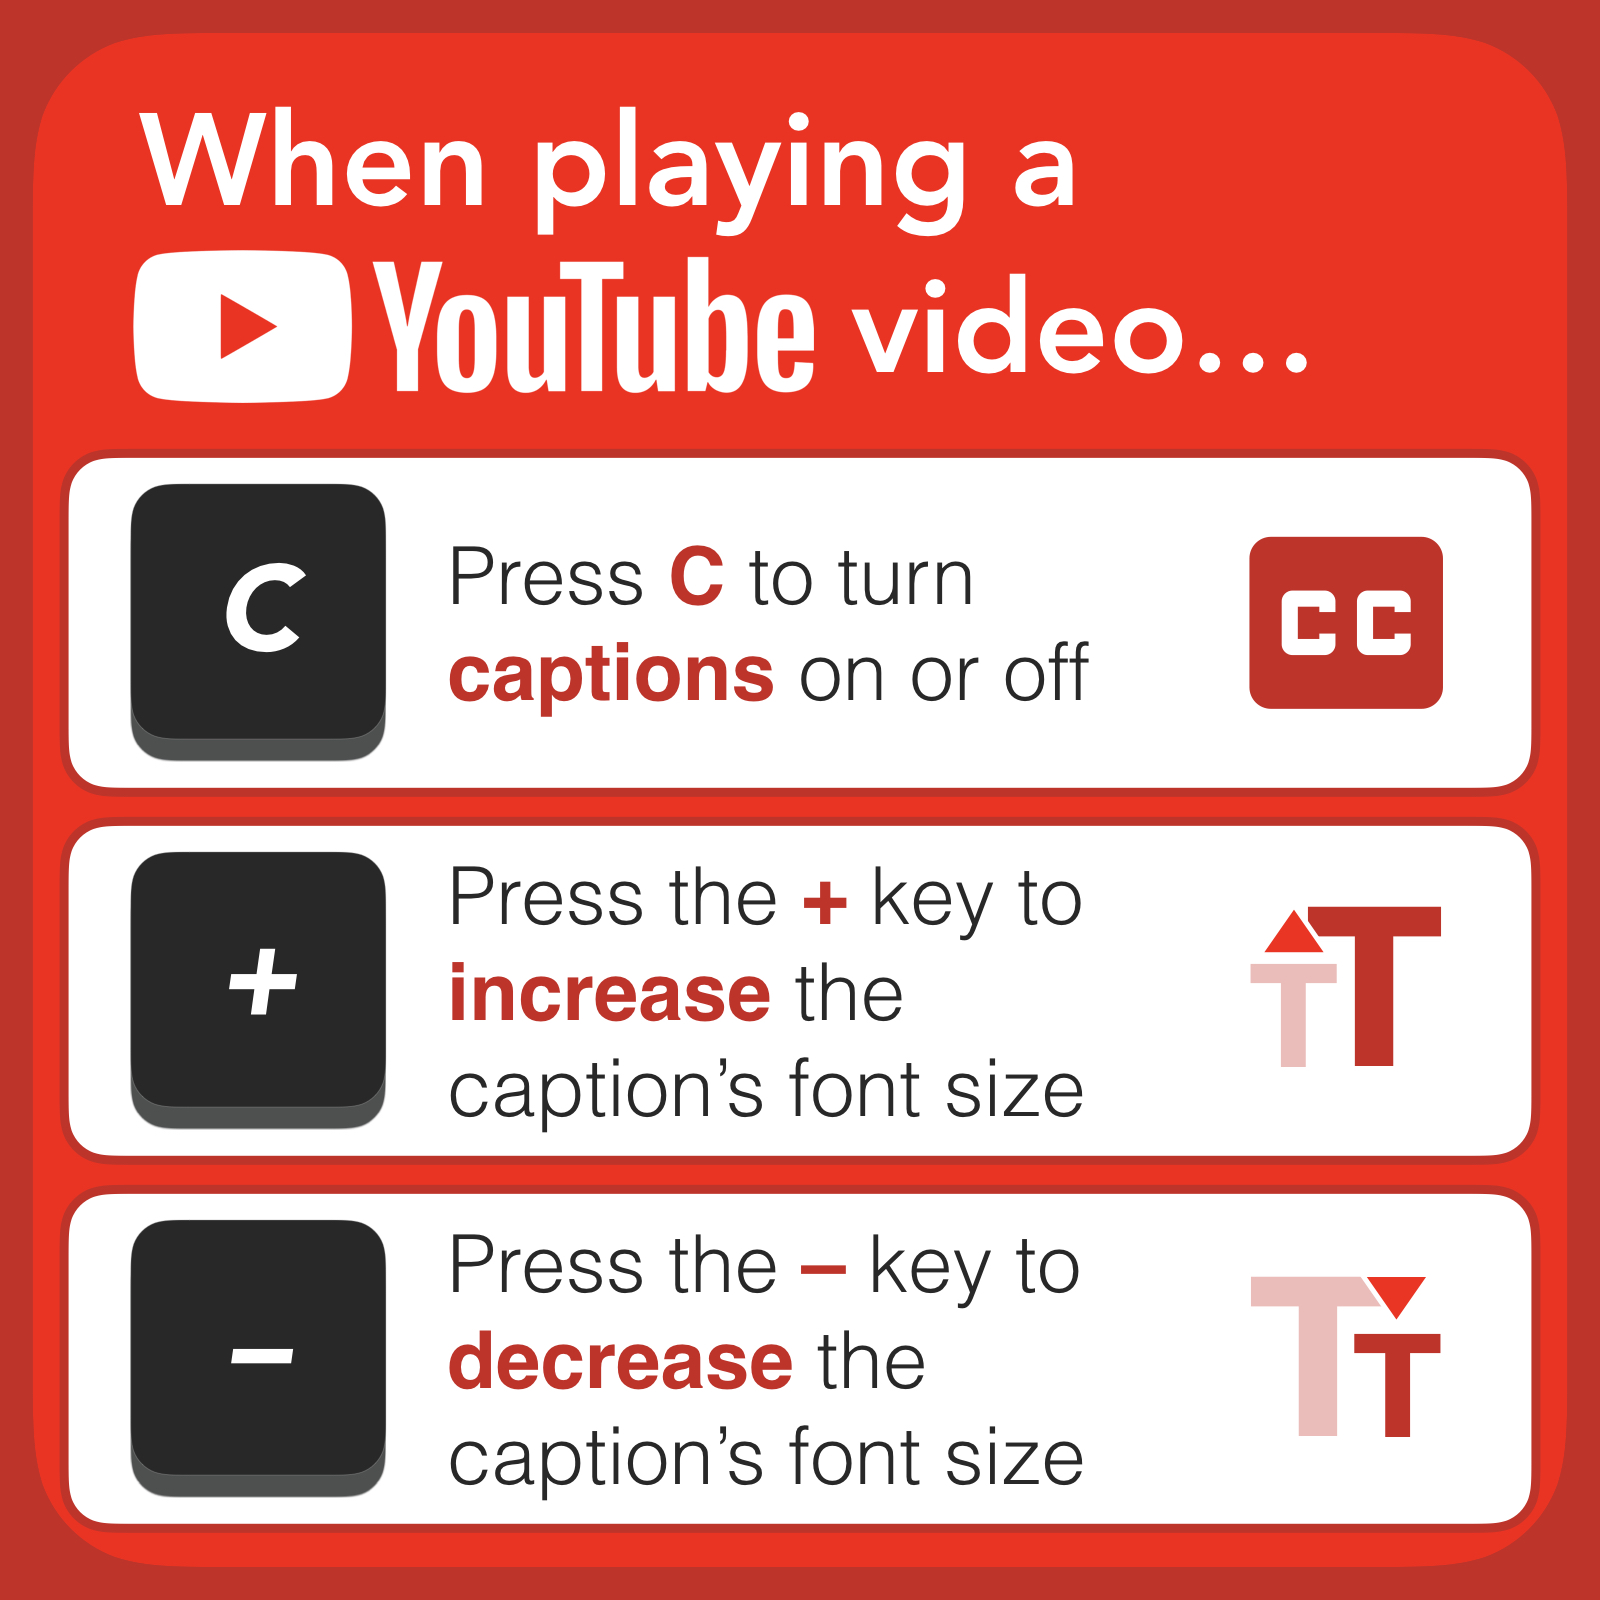 Most videos on YouTube have captions. If a video's owner does not provide captions, YouTube will usually automatically generate them. You can instantly turn YouTube's captions/subtitles on by pressing C on your computer's keyboard. Want to make the caption's text size larger? Press the + key. Want to make the text size smaller? Press the - key. Want to turn captions off? Press the C key.